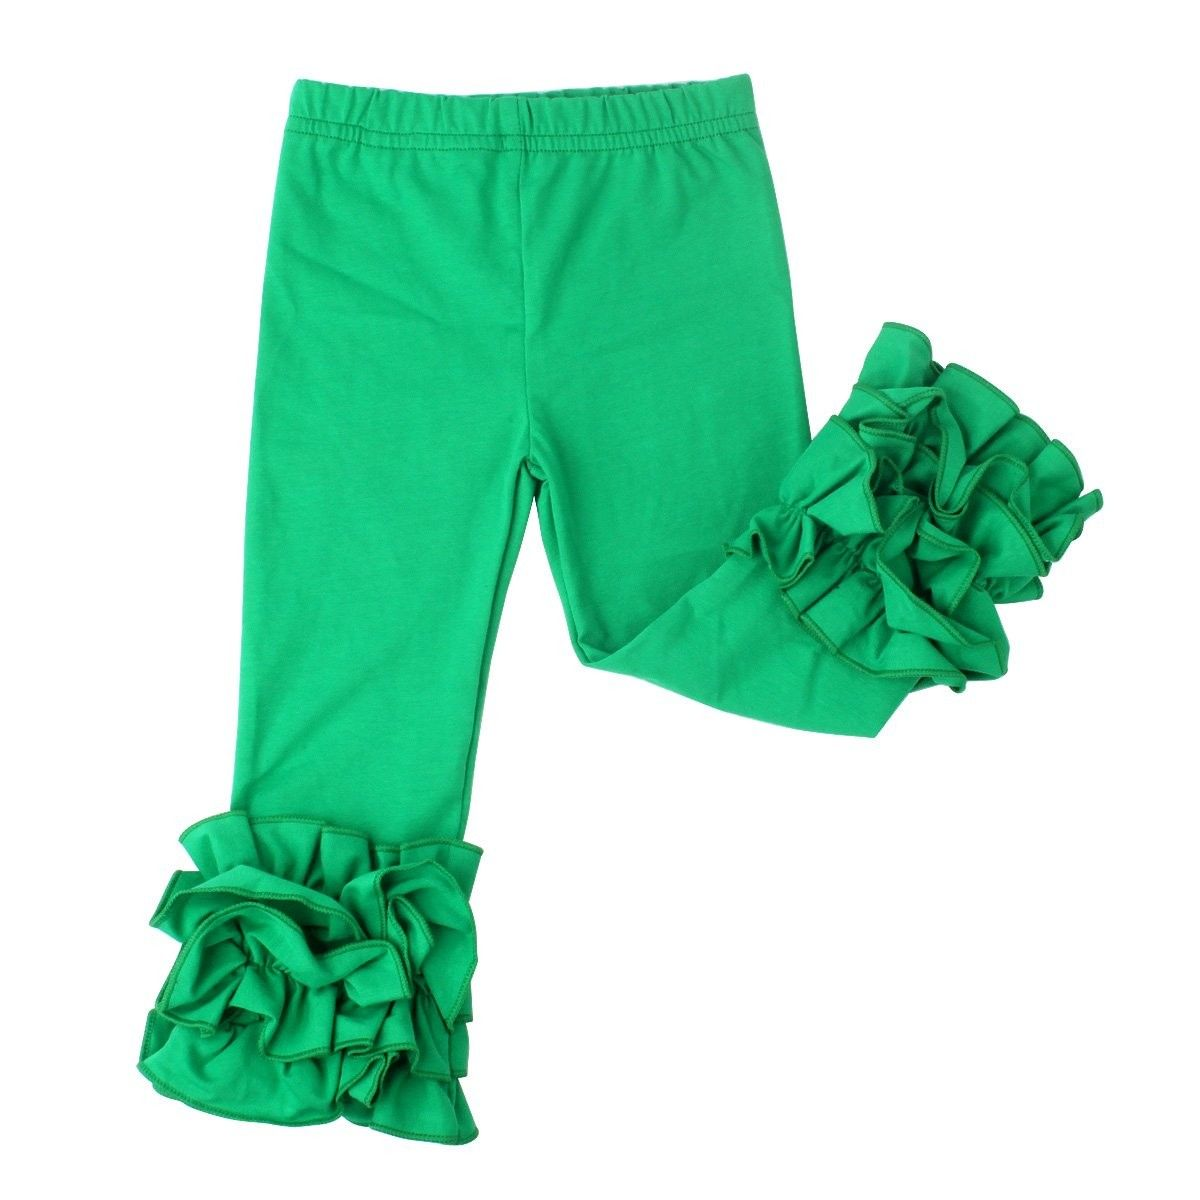 dec8066538a0d Little Girls' Ruffle Leggings Baby Toddler Solid Color Flower Pants - Green  - CU1898XTQ6N - Girls' Clothing, Leggings #Leggings #Girls' #Clothing # #  ...